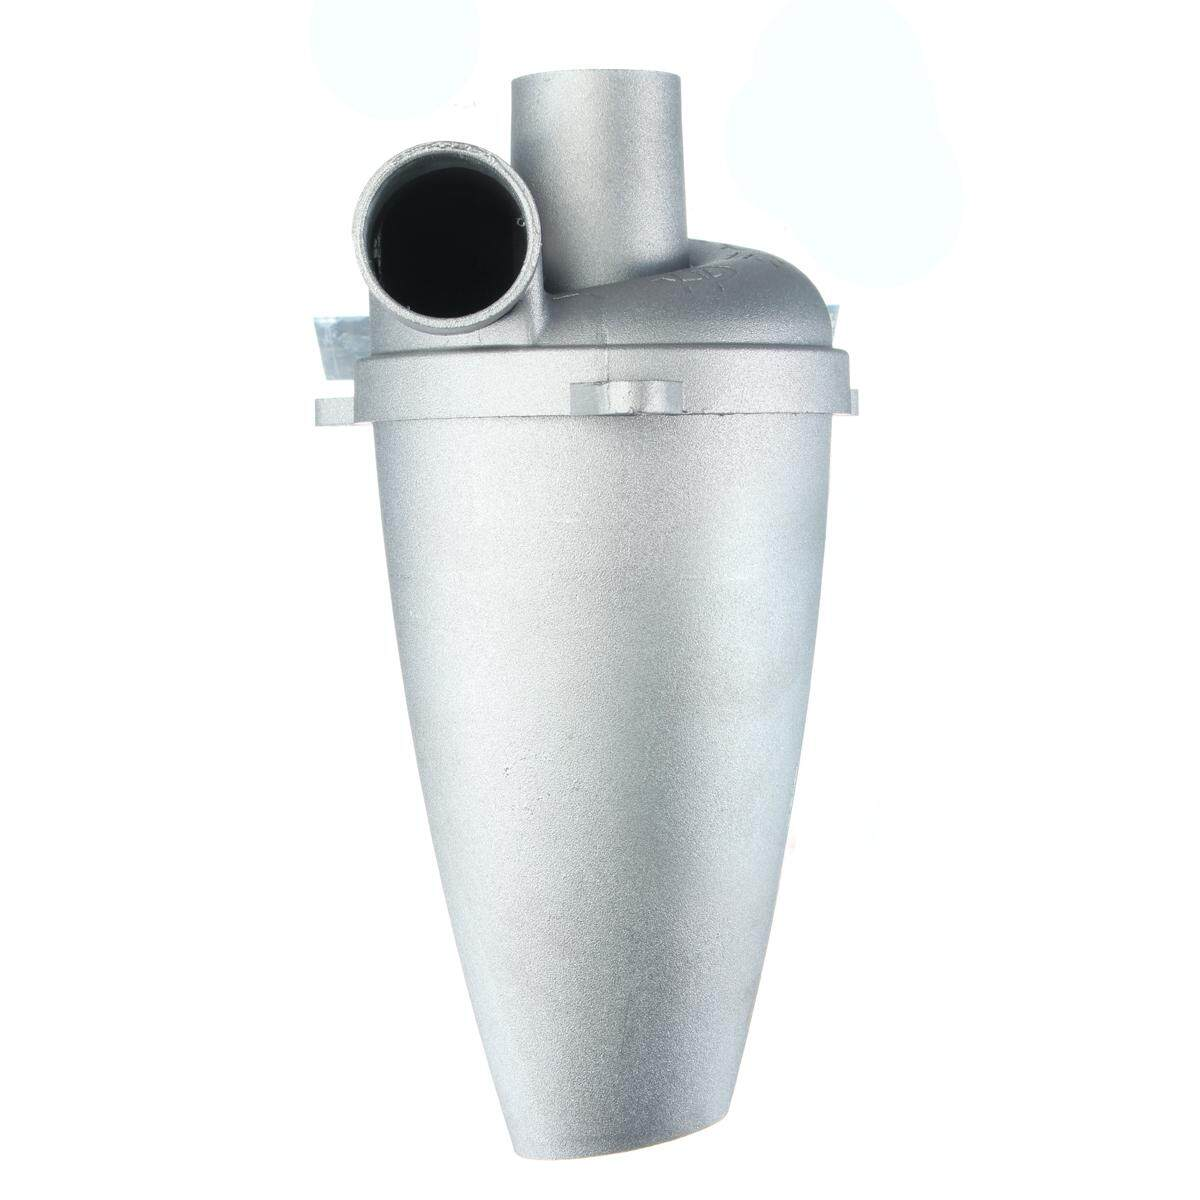 Powder Dust Collector Industrial Extractor For Vacuum Separator CNC  Woodworking - intl Singapore